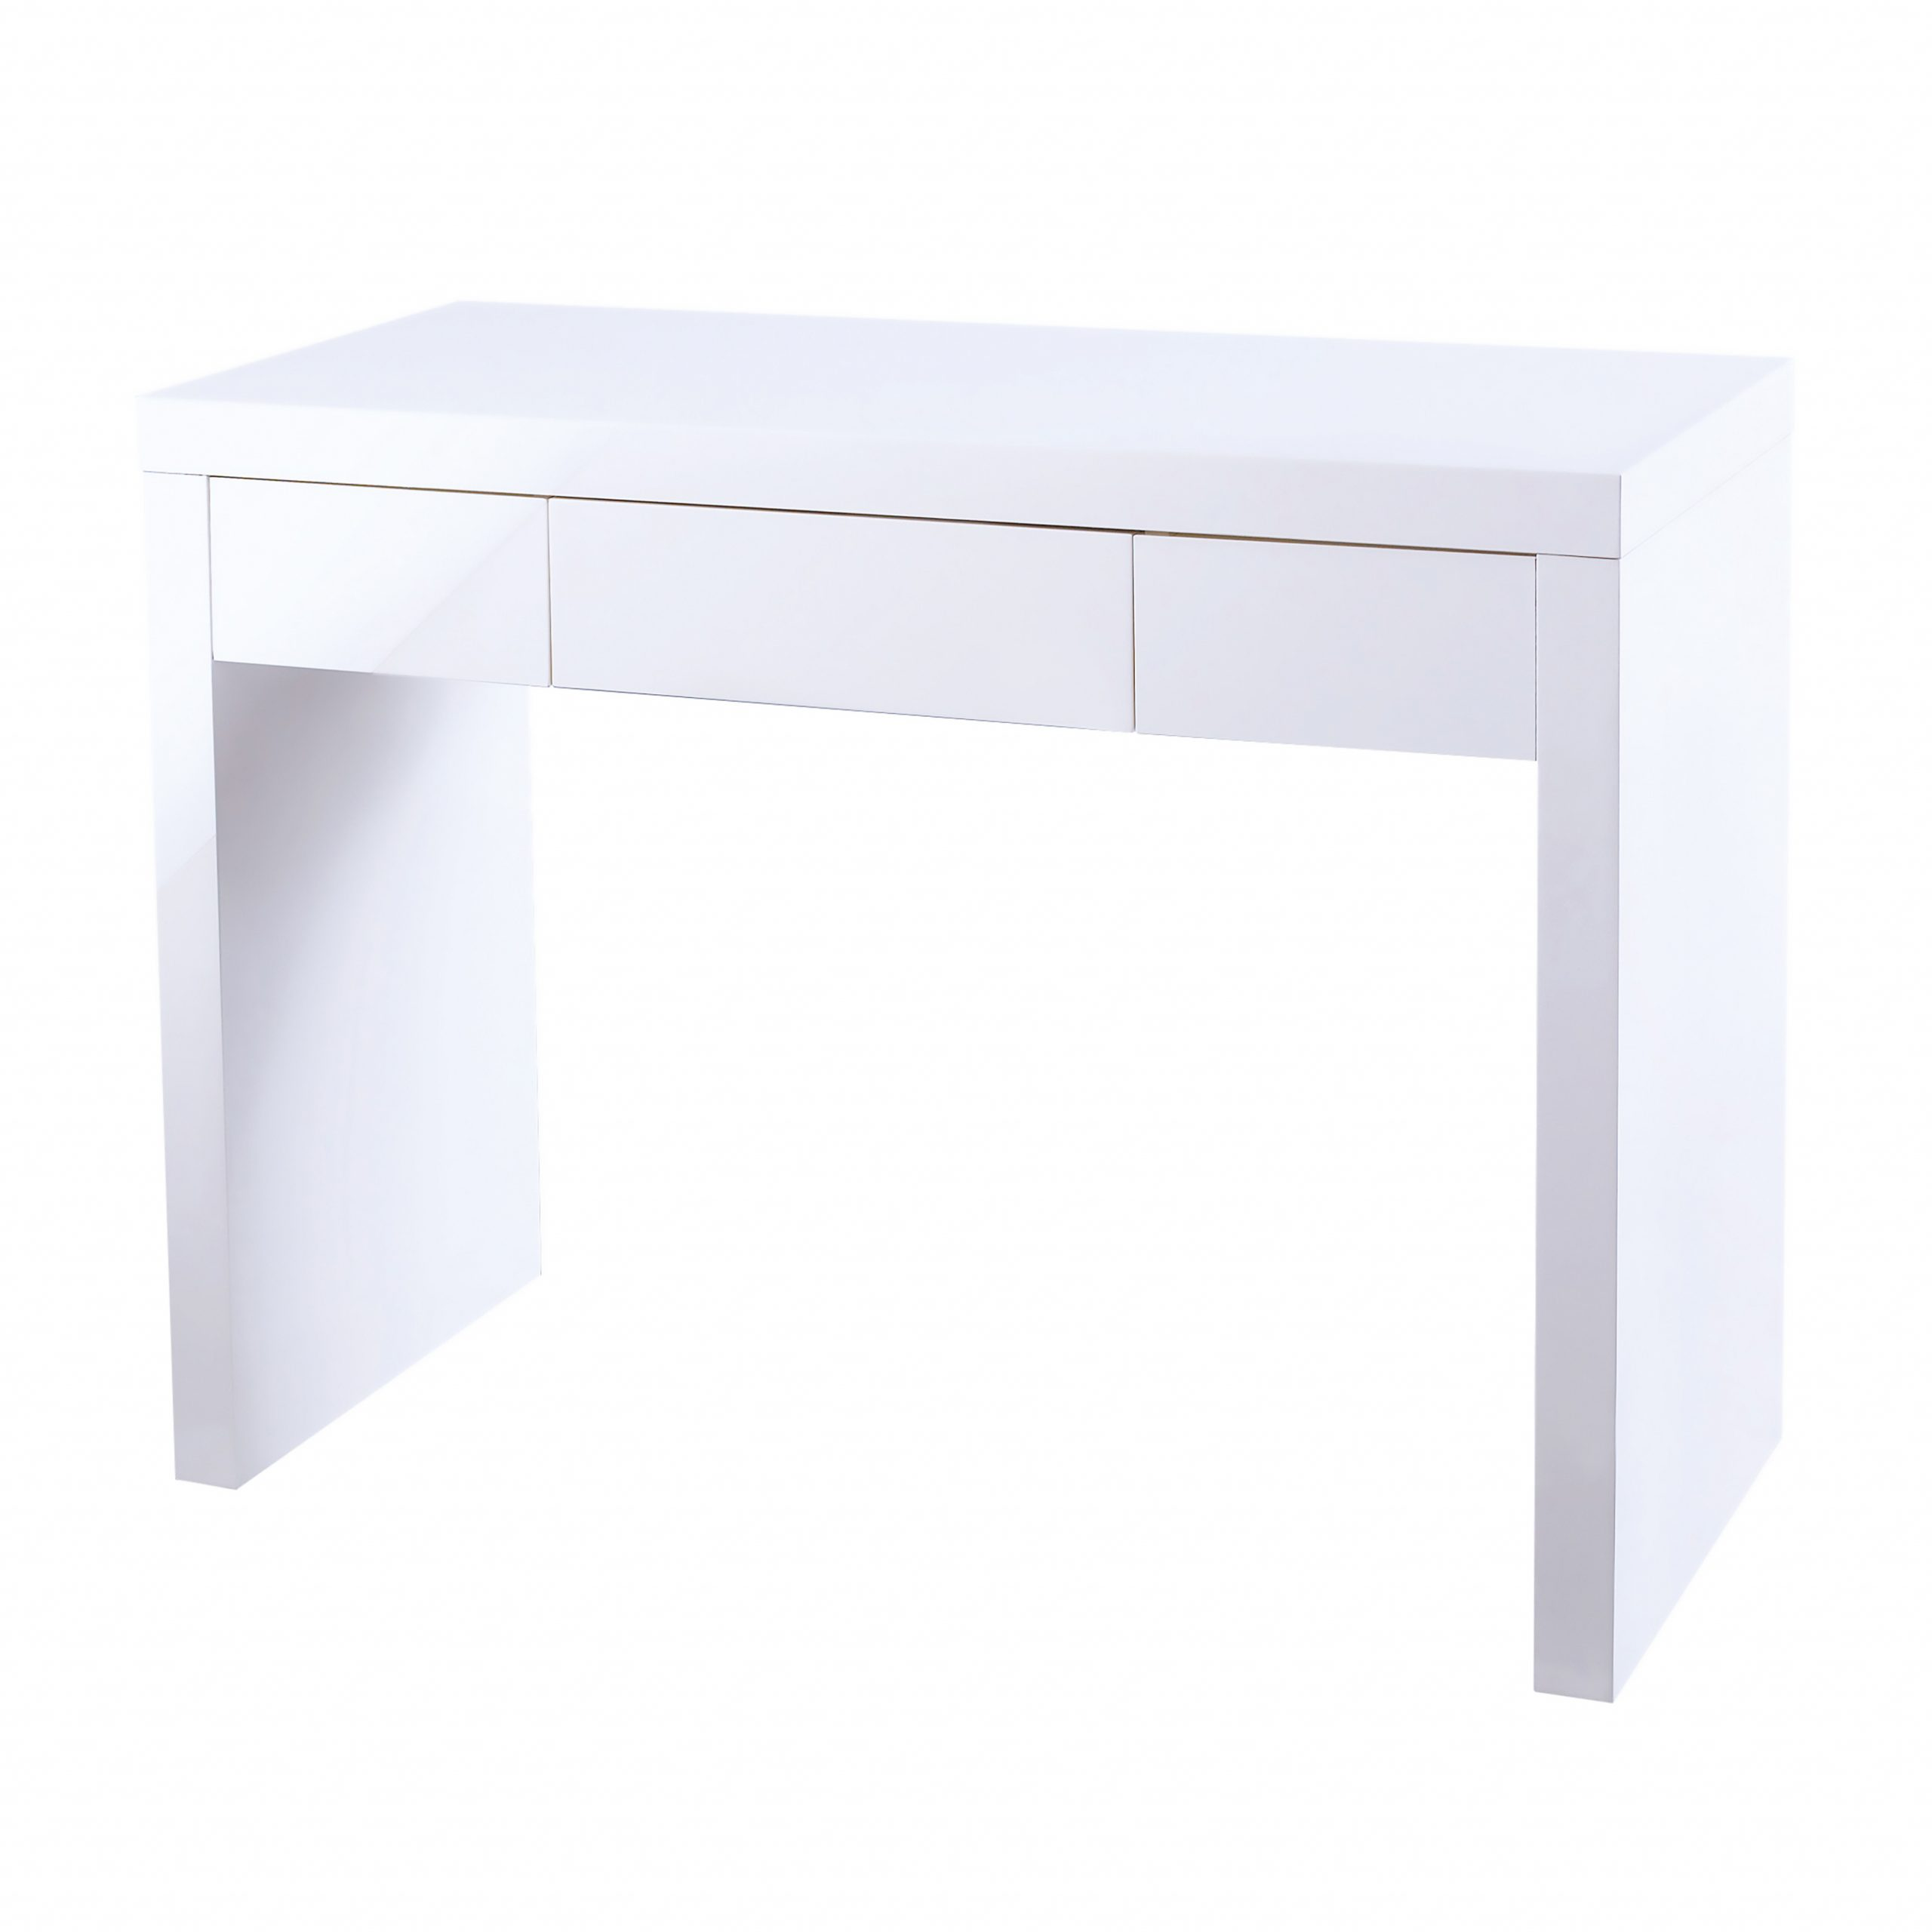 Lpd Furniture (View 1 of 10)